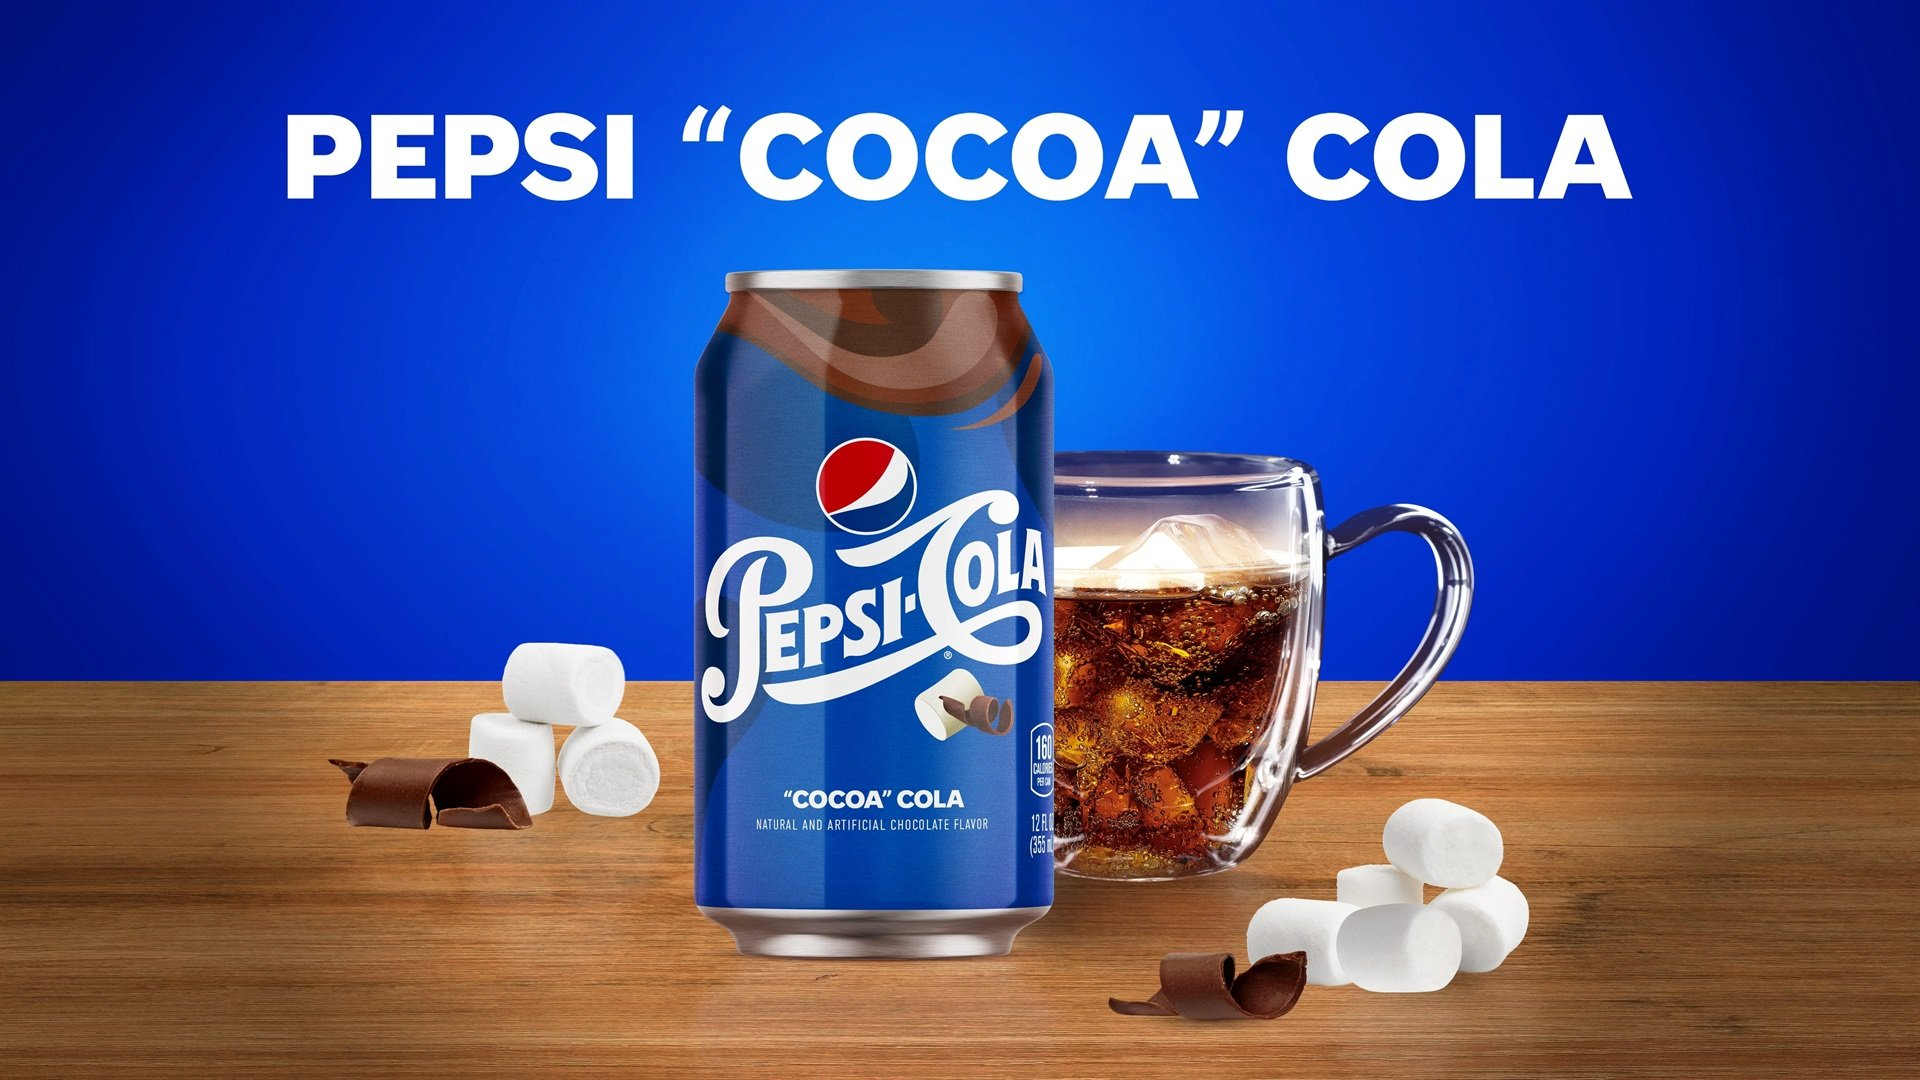 Pepsi Is Launching 'cocoa' Cola, A Drink Made To Taste Like Hot Chocolate With Marshmallows photo